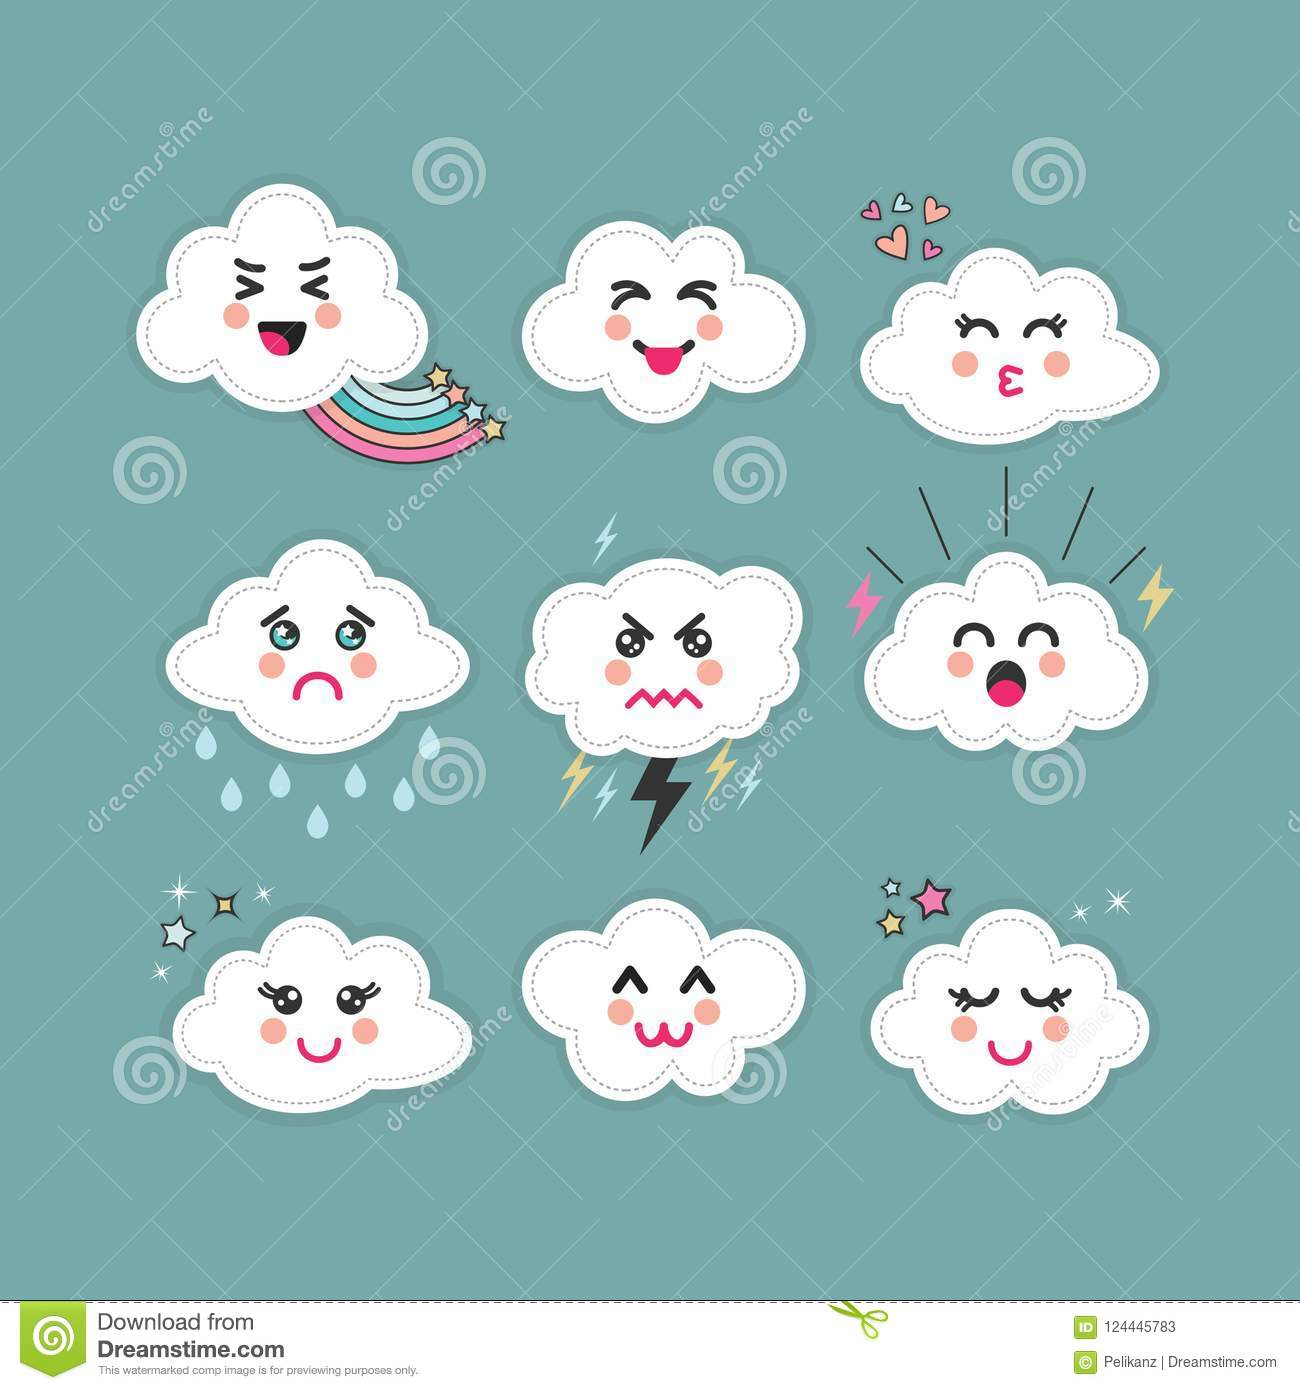 Cute Abstract Clouds Emoji Icons Set With Different